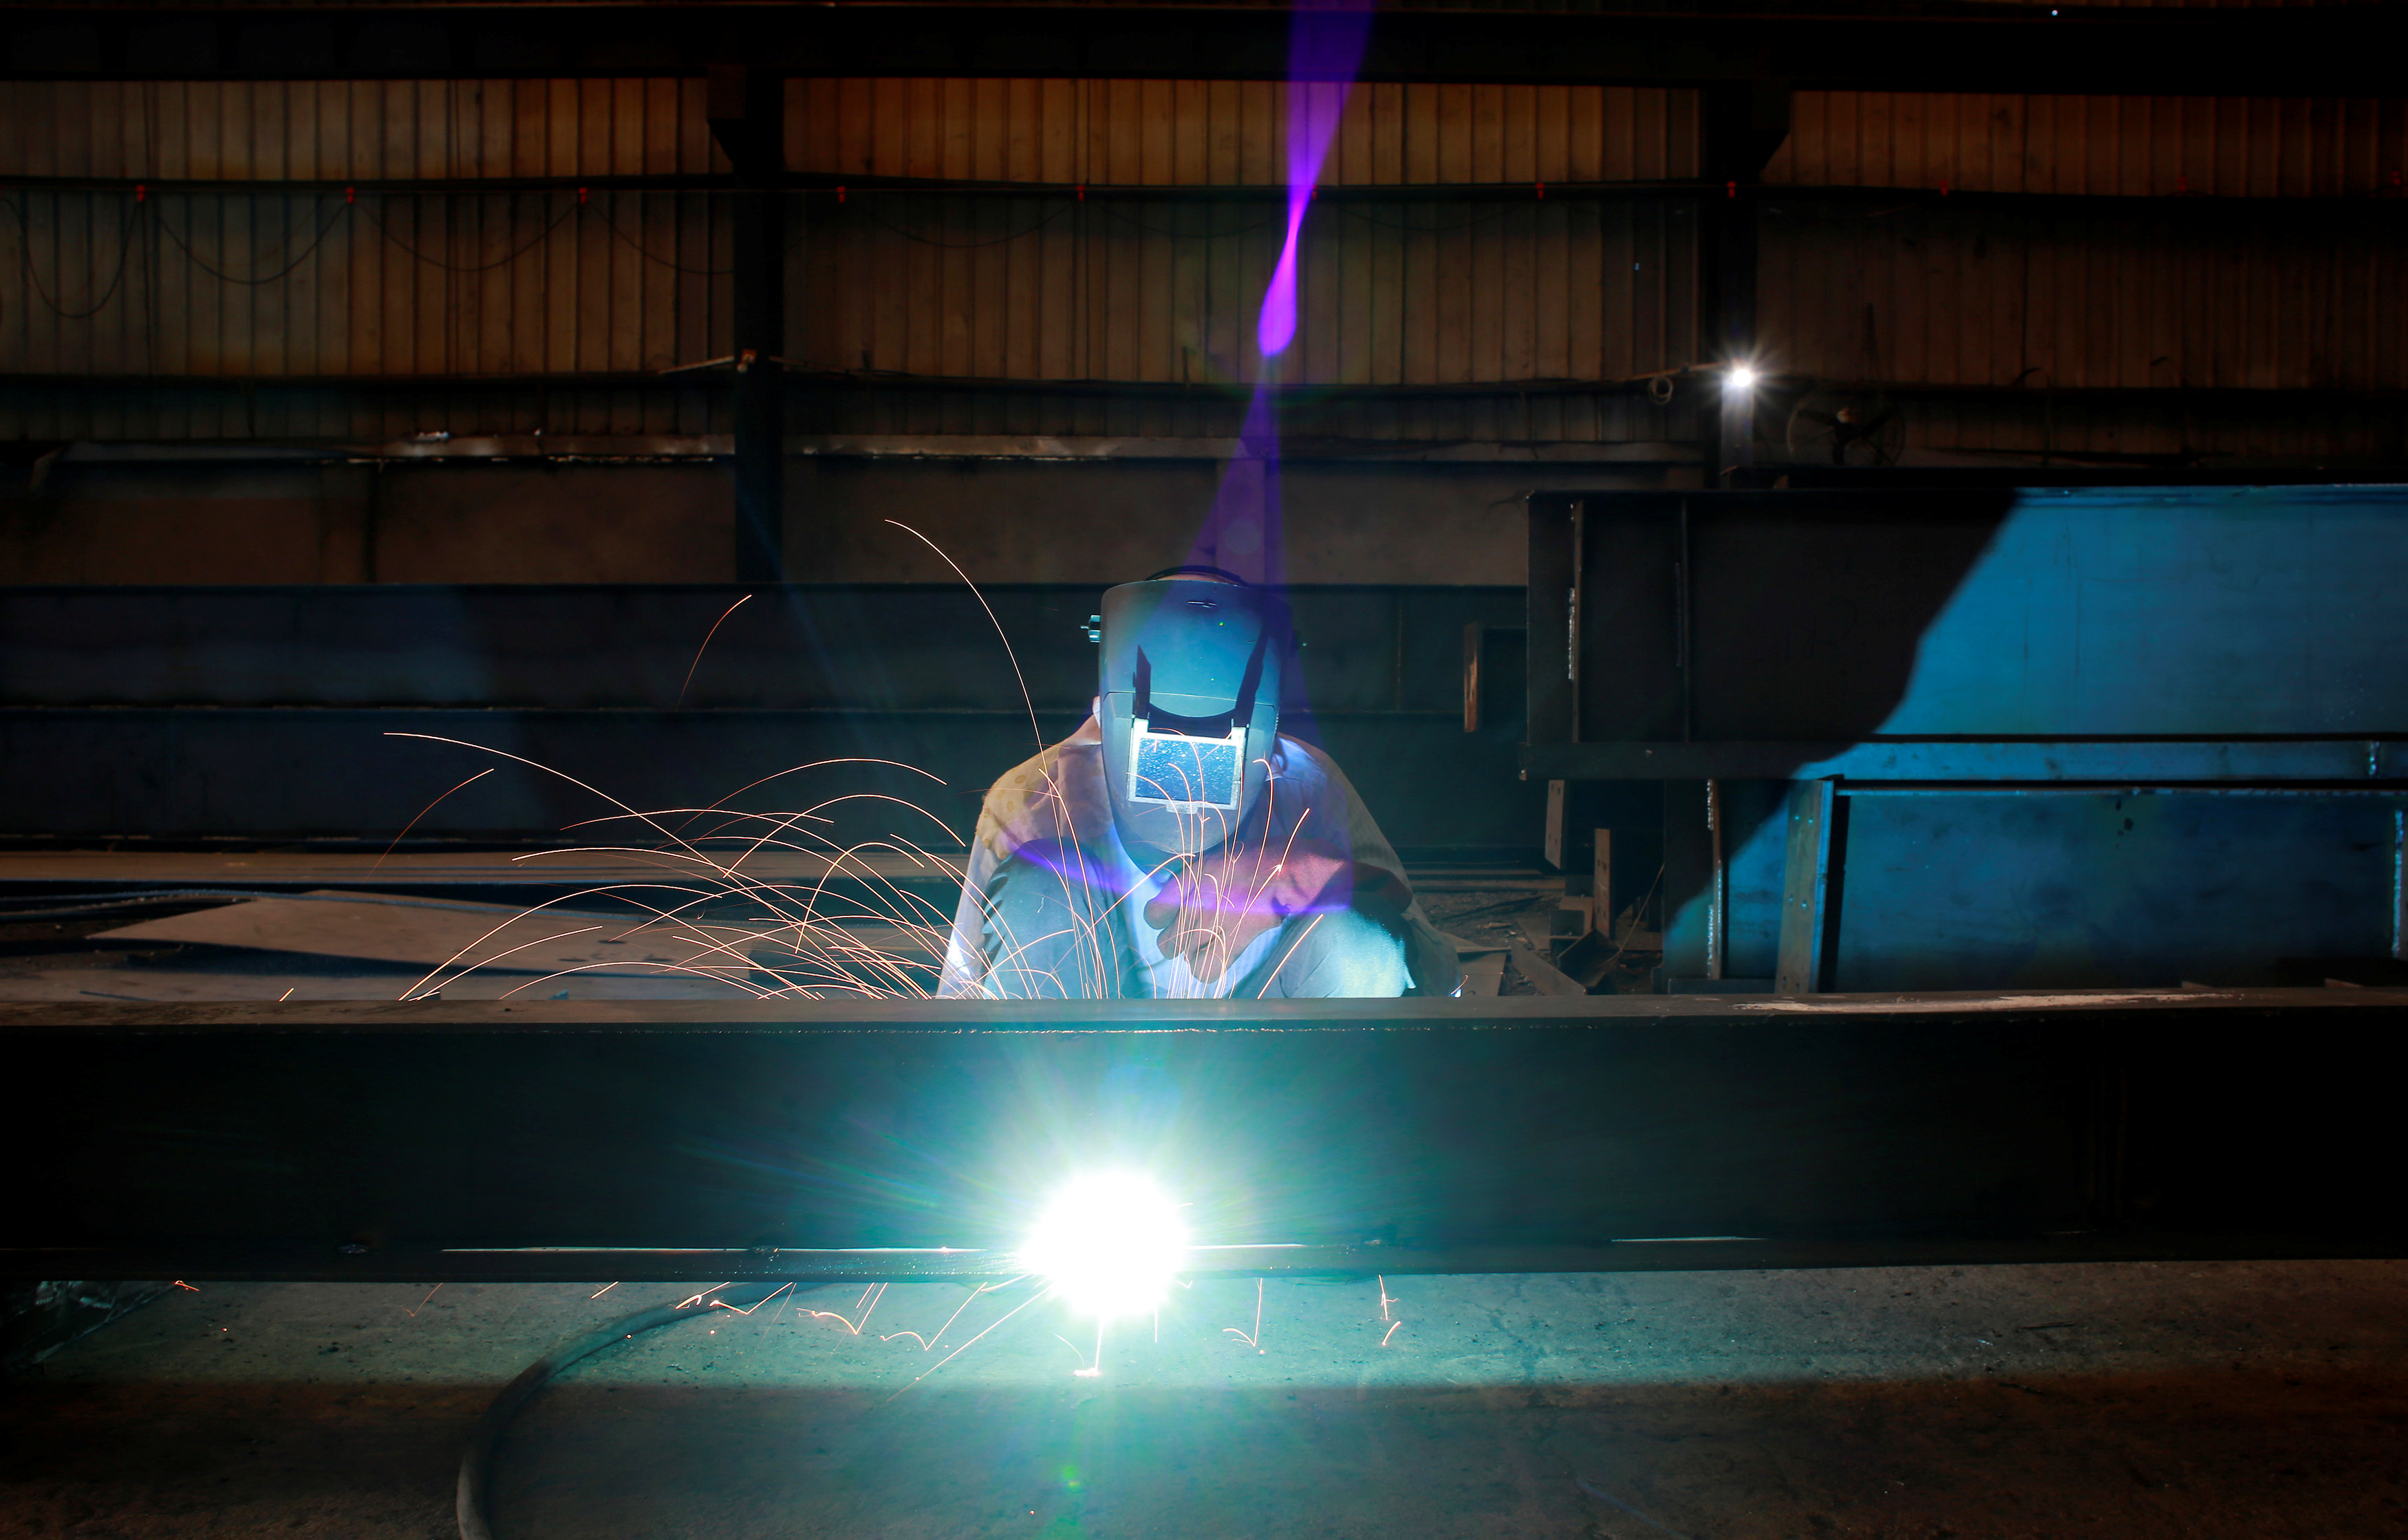 A labourer welds an iron pillar at a building material factory in an industrial area in Dasna, in the central Indian state of Uttar Pradesh, India, January 9, 2019. REUTERS/Adnan Abidi/File Photo